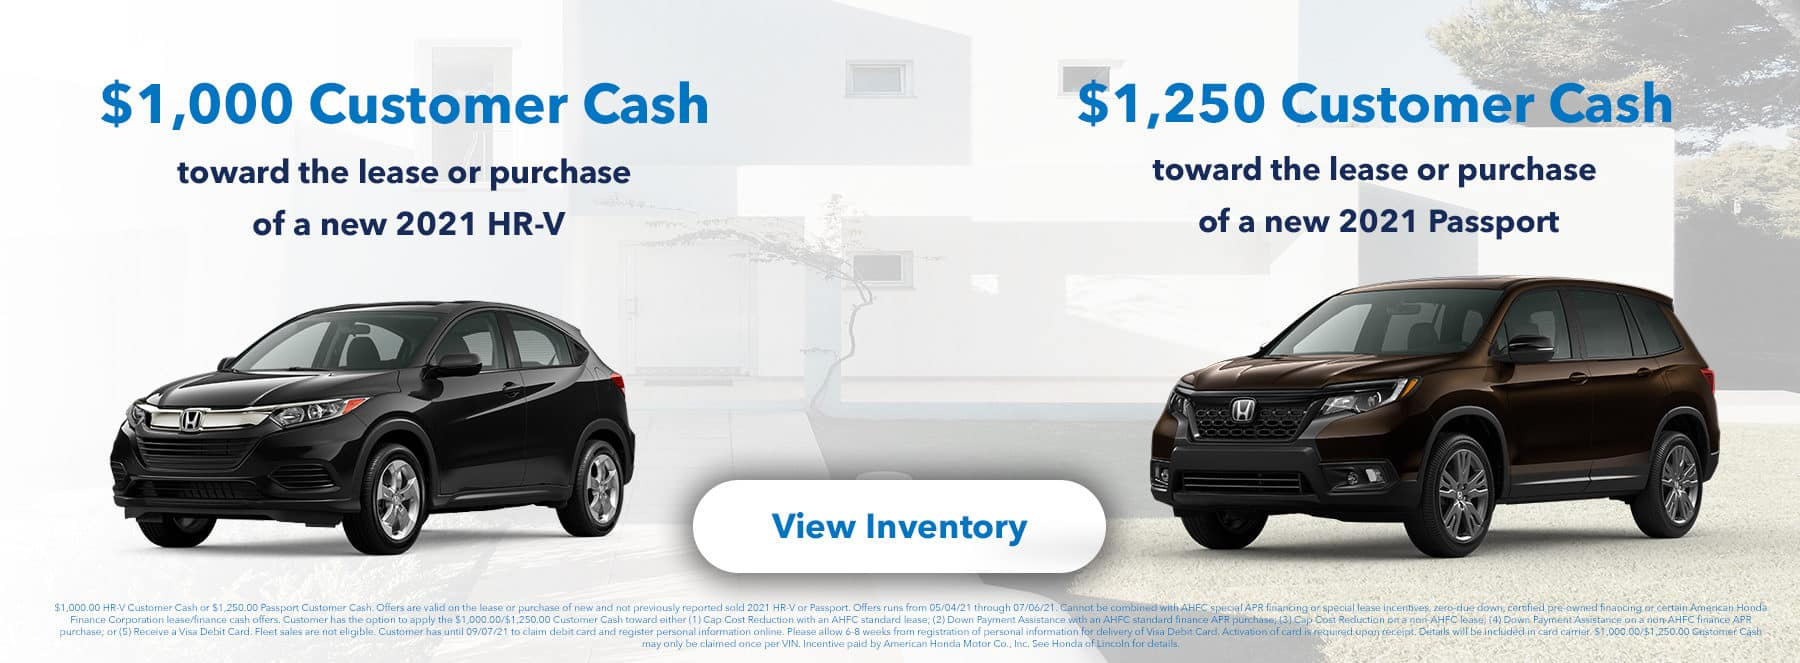 $1,000 Customer Cash toward the lease or purchase of a new 2021 HR-V or $1,250 Customer Cash toward the lease or purchase of a new 2021 Passport